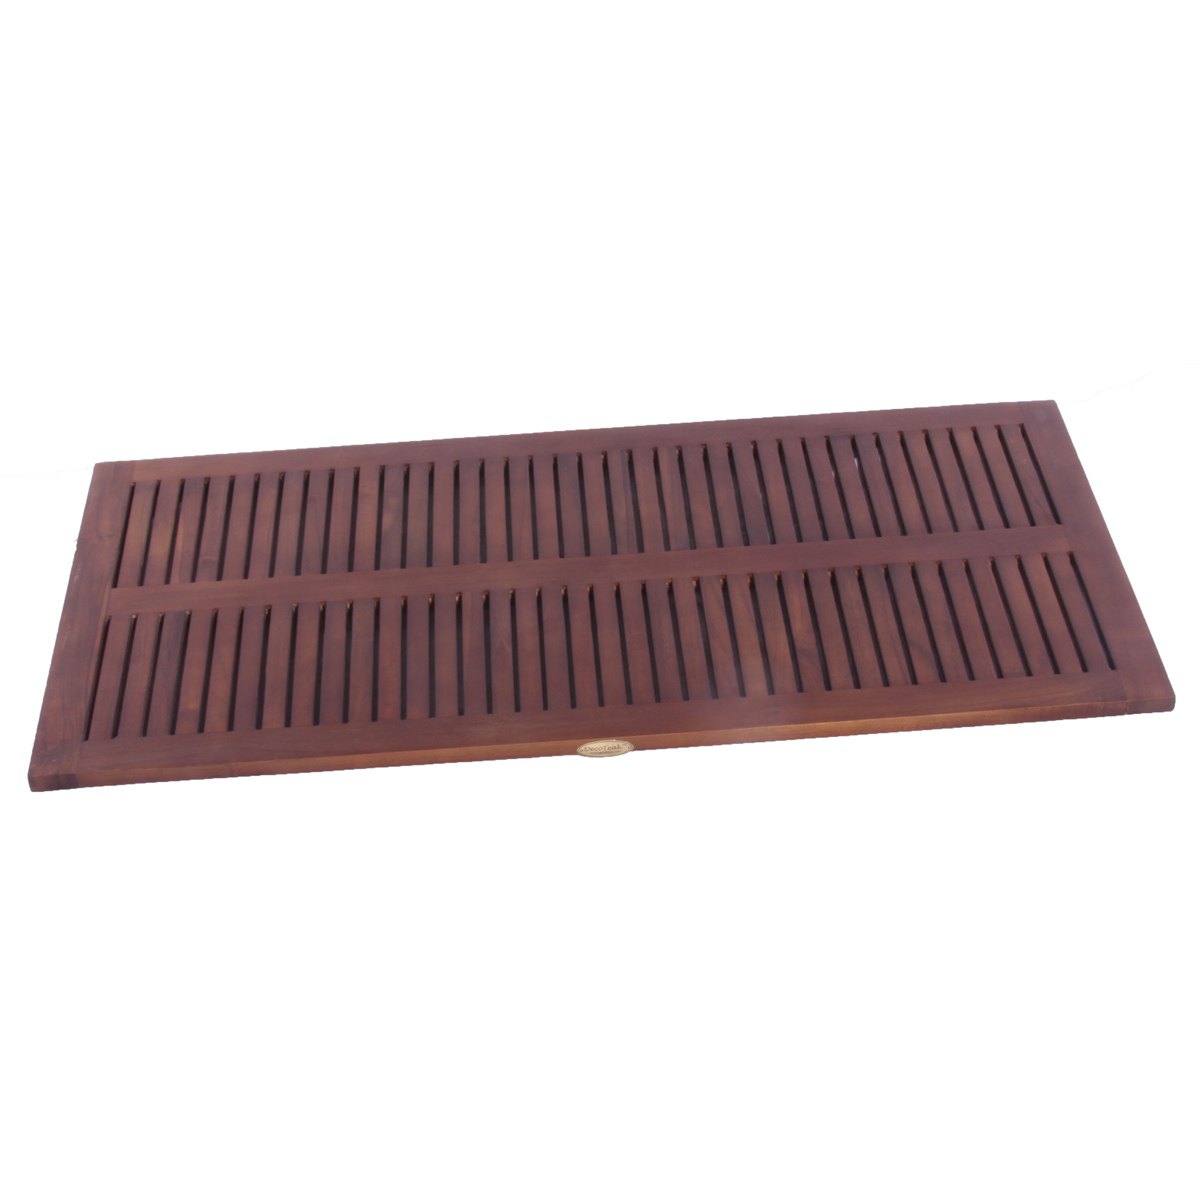 "Decoteak DT135 40"" x 20"" Teak Shower Bath Floor Mat"